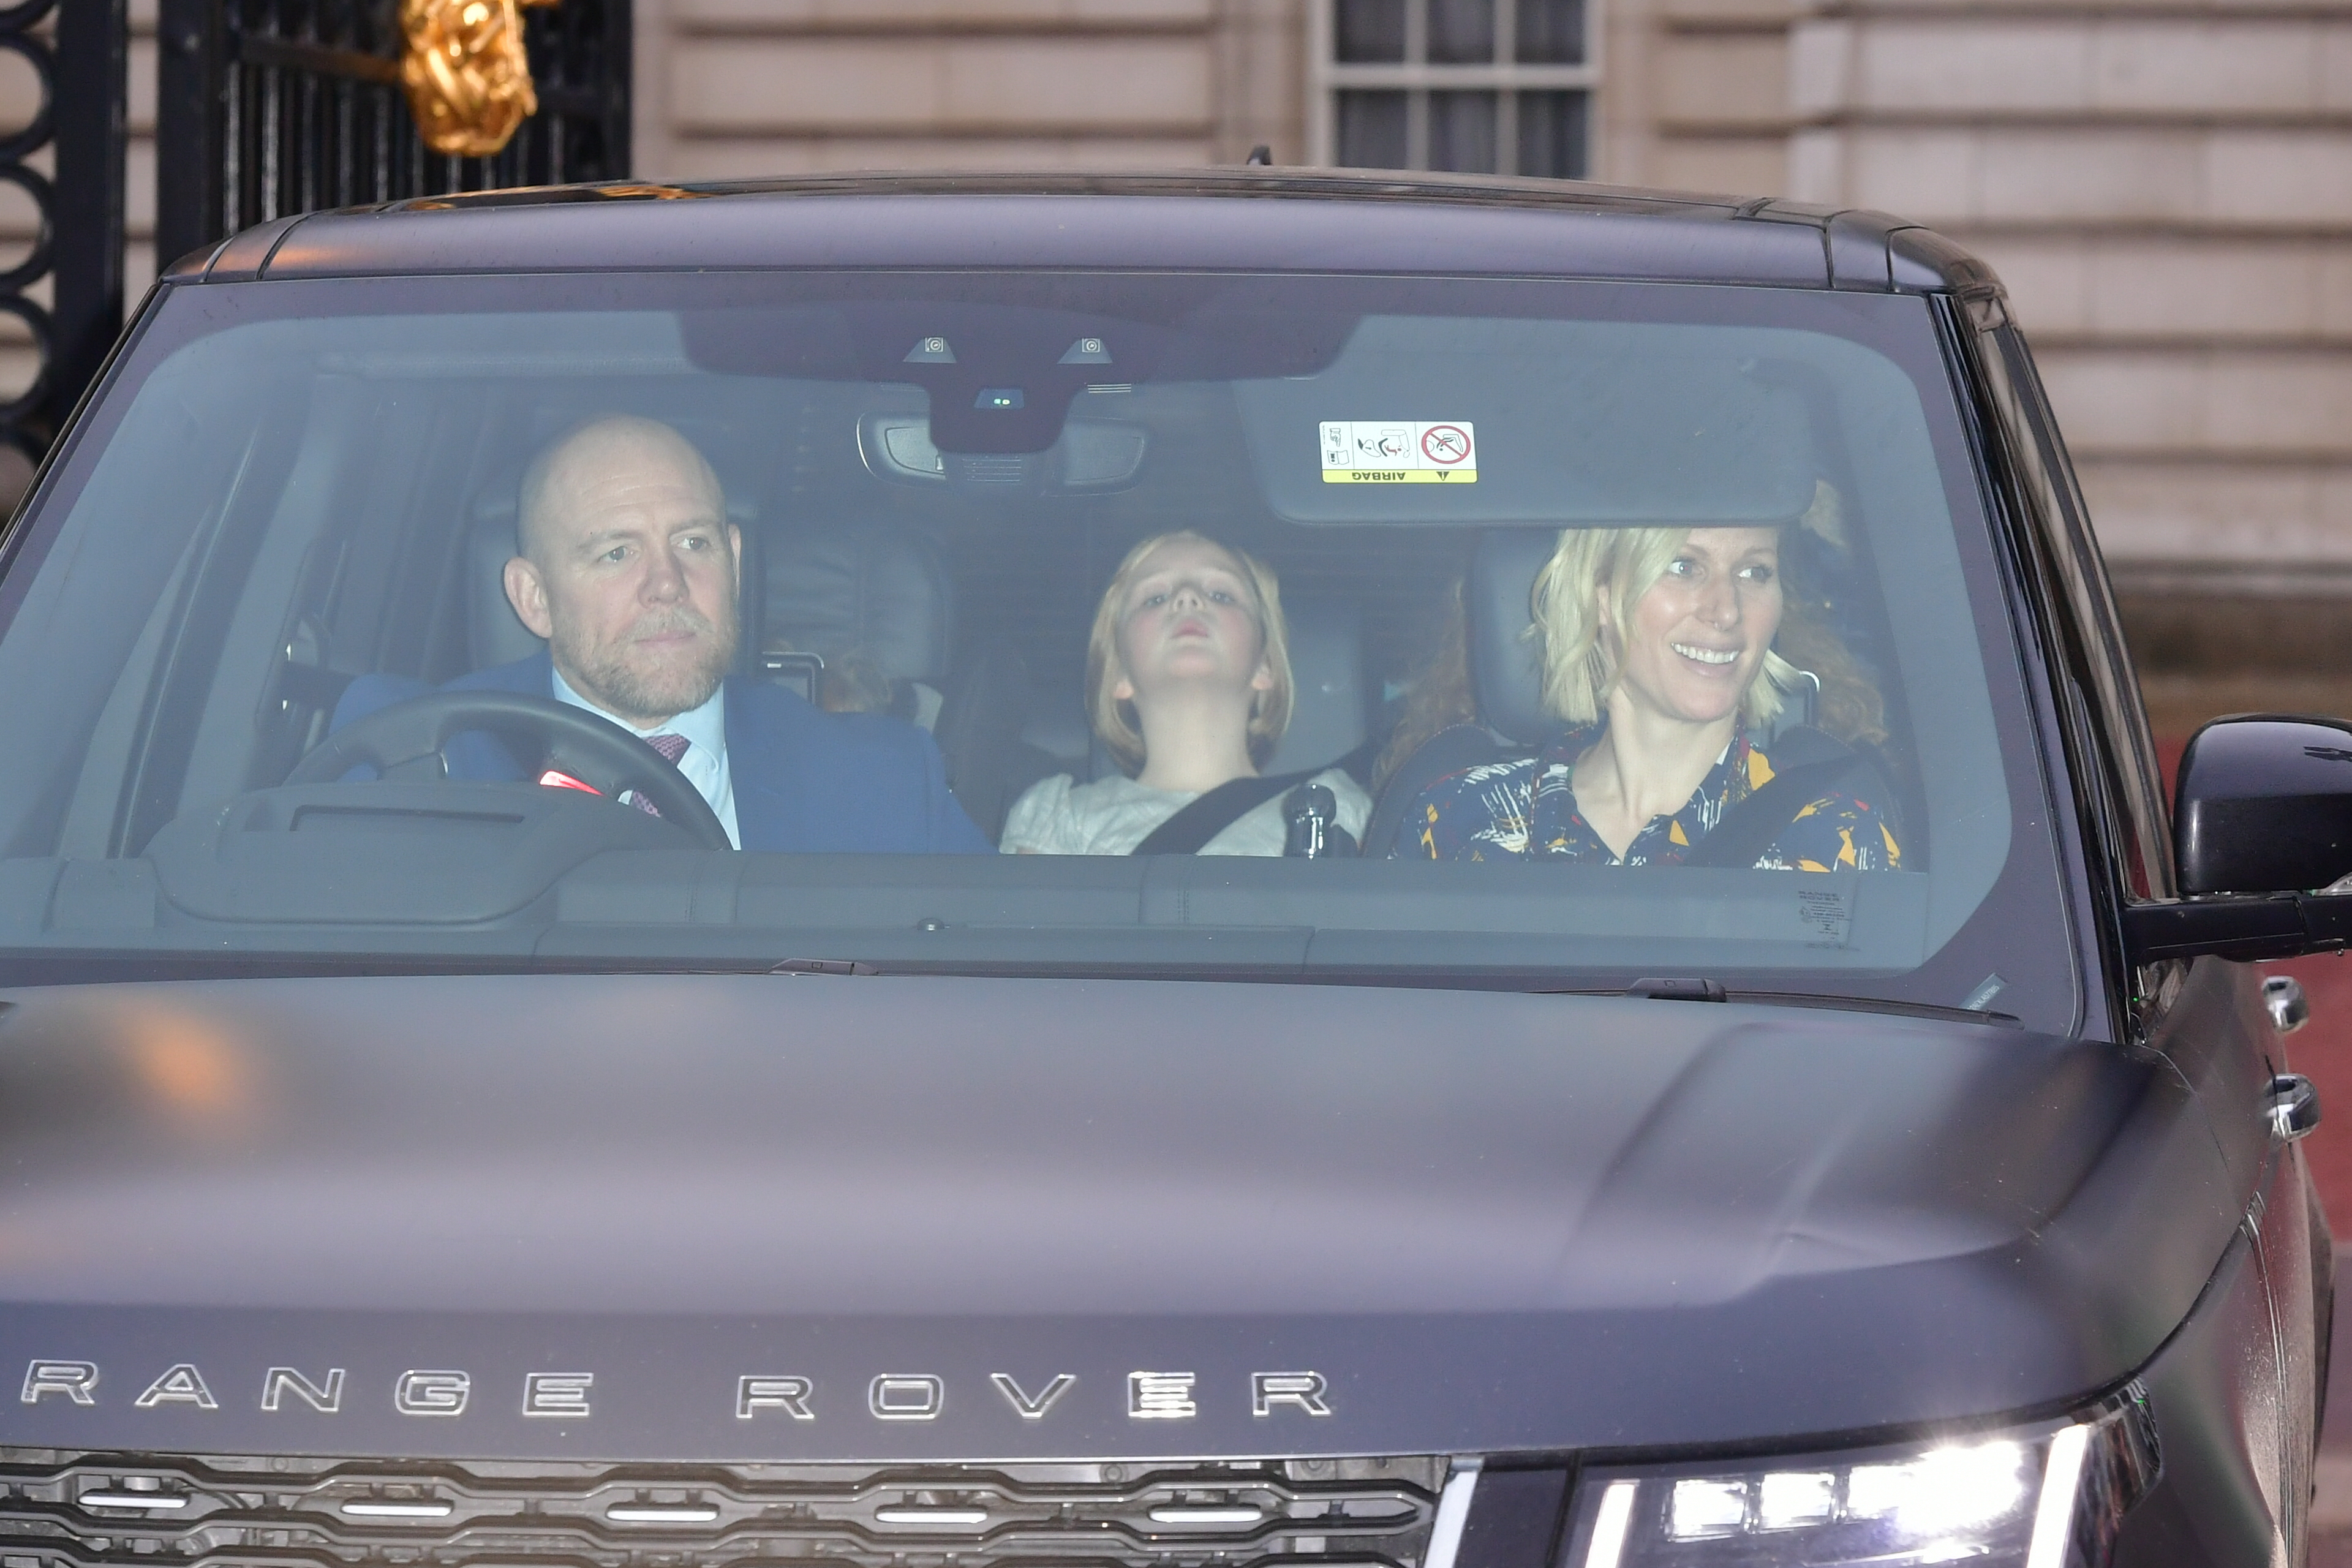 Mike Tindall and Zara Tindall, with daughter Mia Grace, leaving the Queen's Christmas lunch at Buckingham Palace, London.